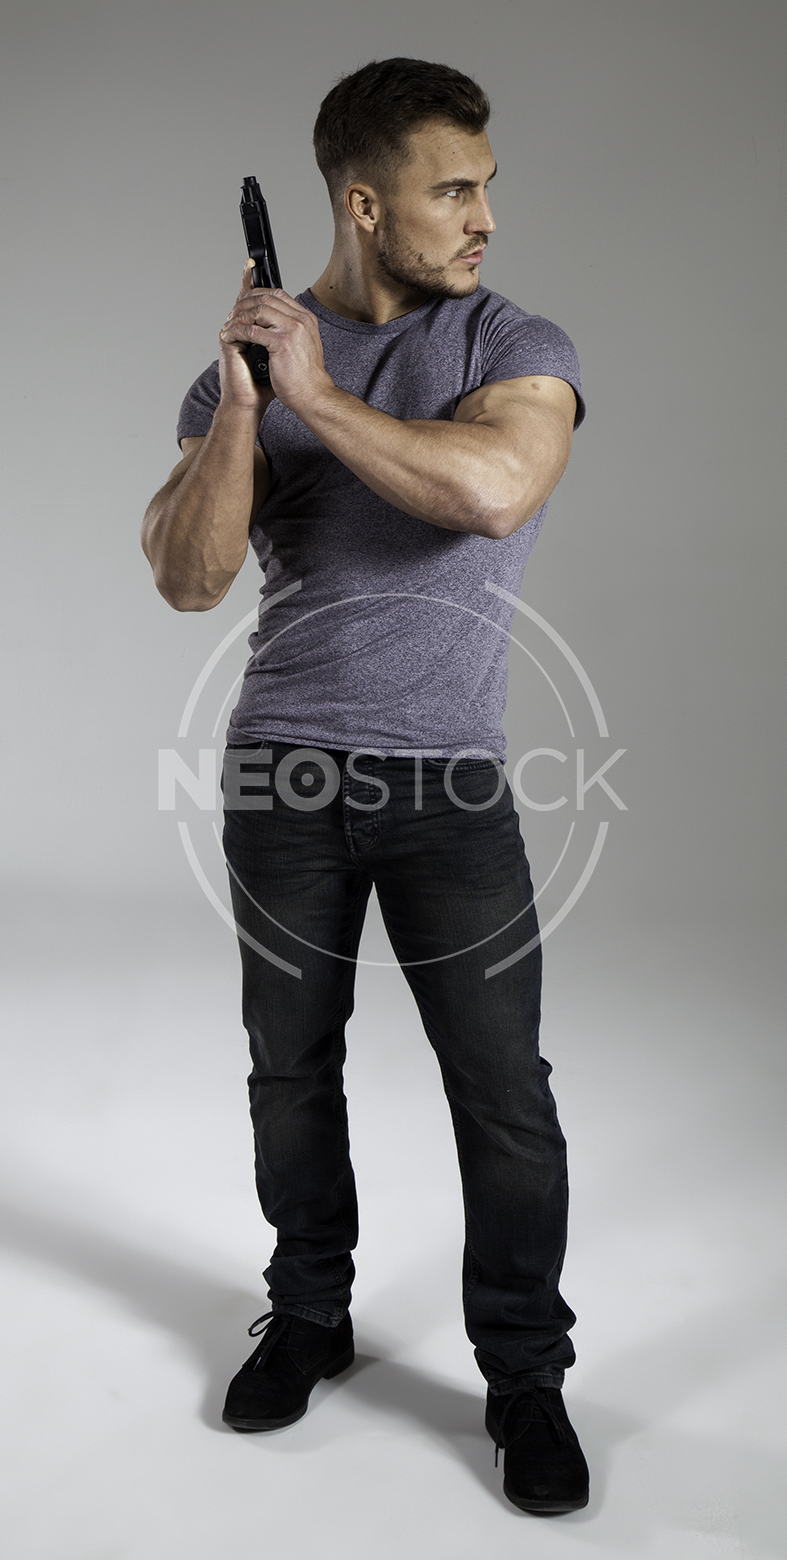 NeoStock - Danny D Action Thriller - Stock Photography V